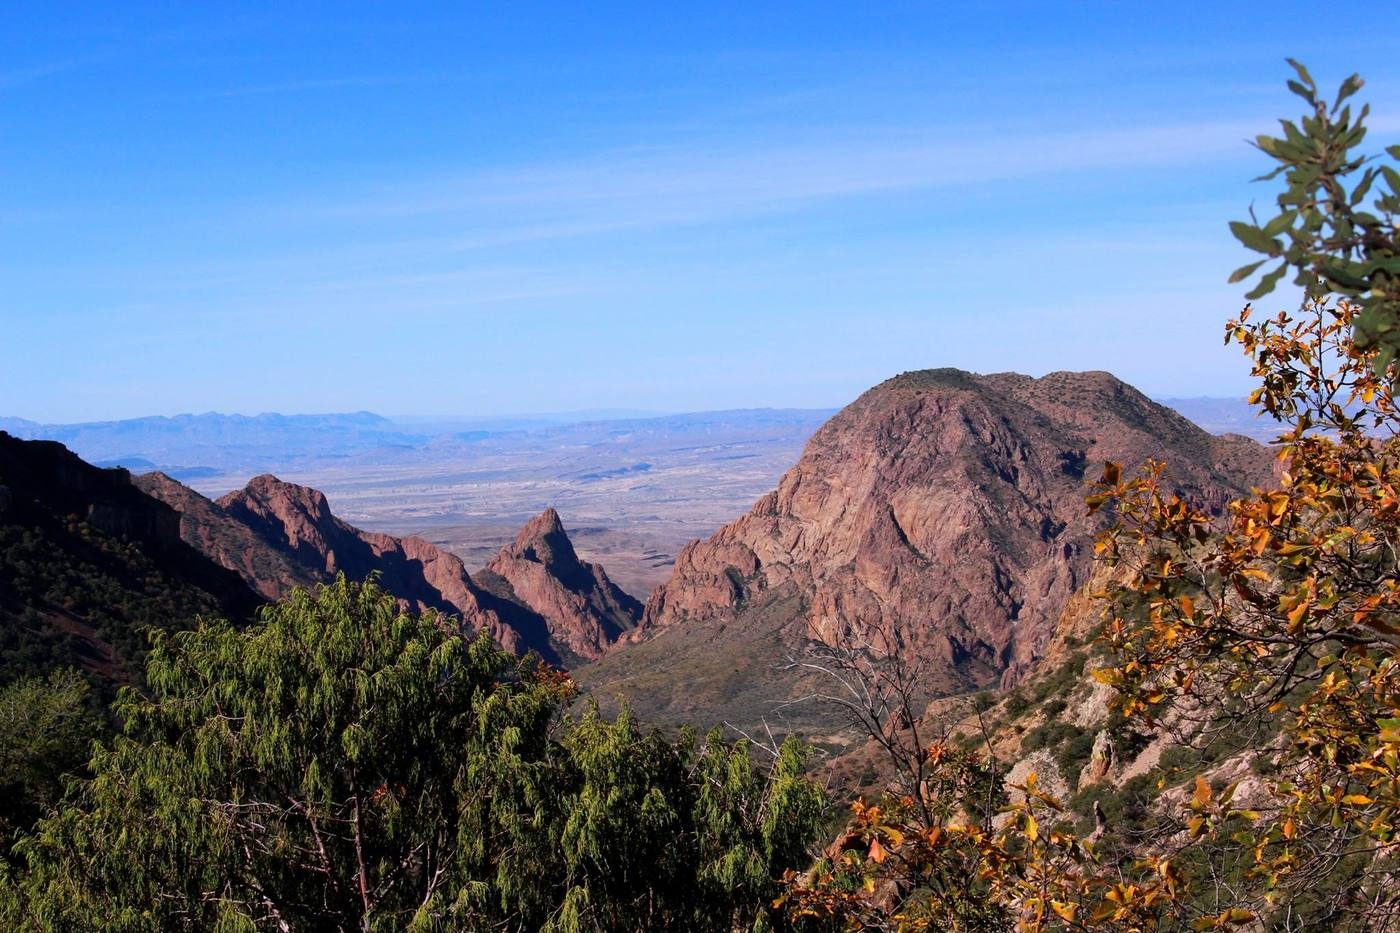 Your Guide to Having an Amazing Big Bend Adventure from El Paso